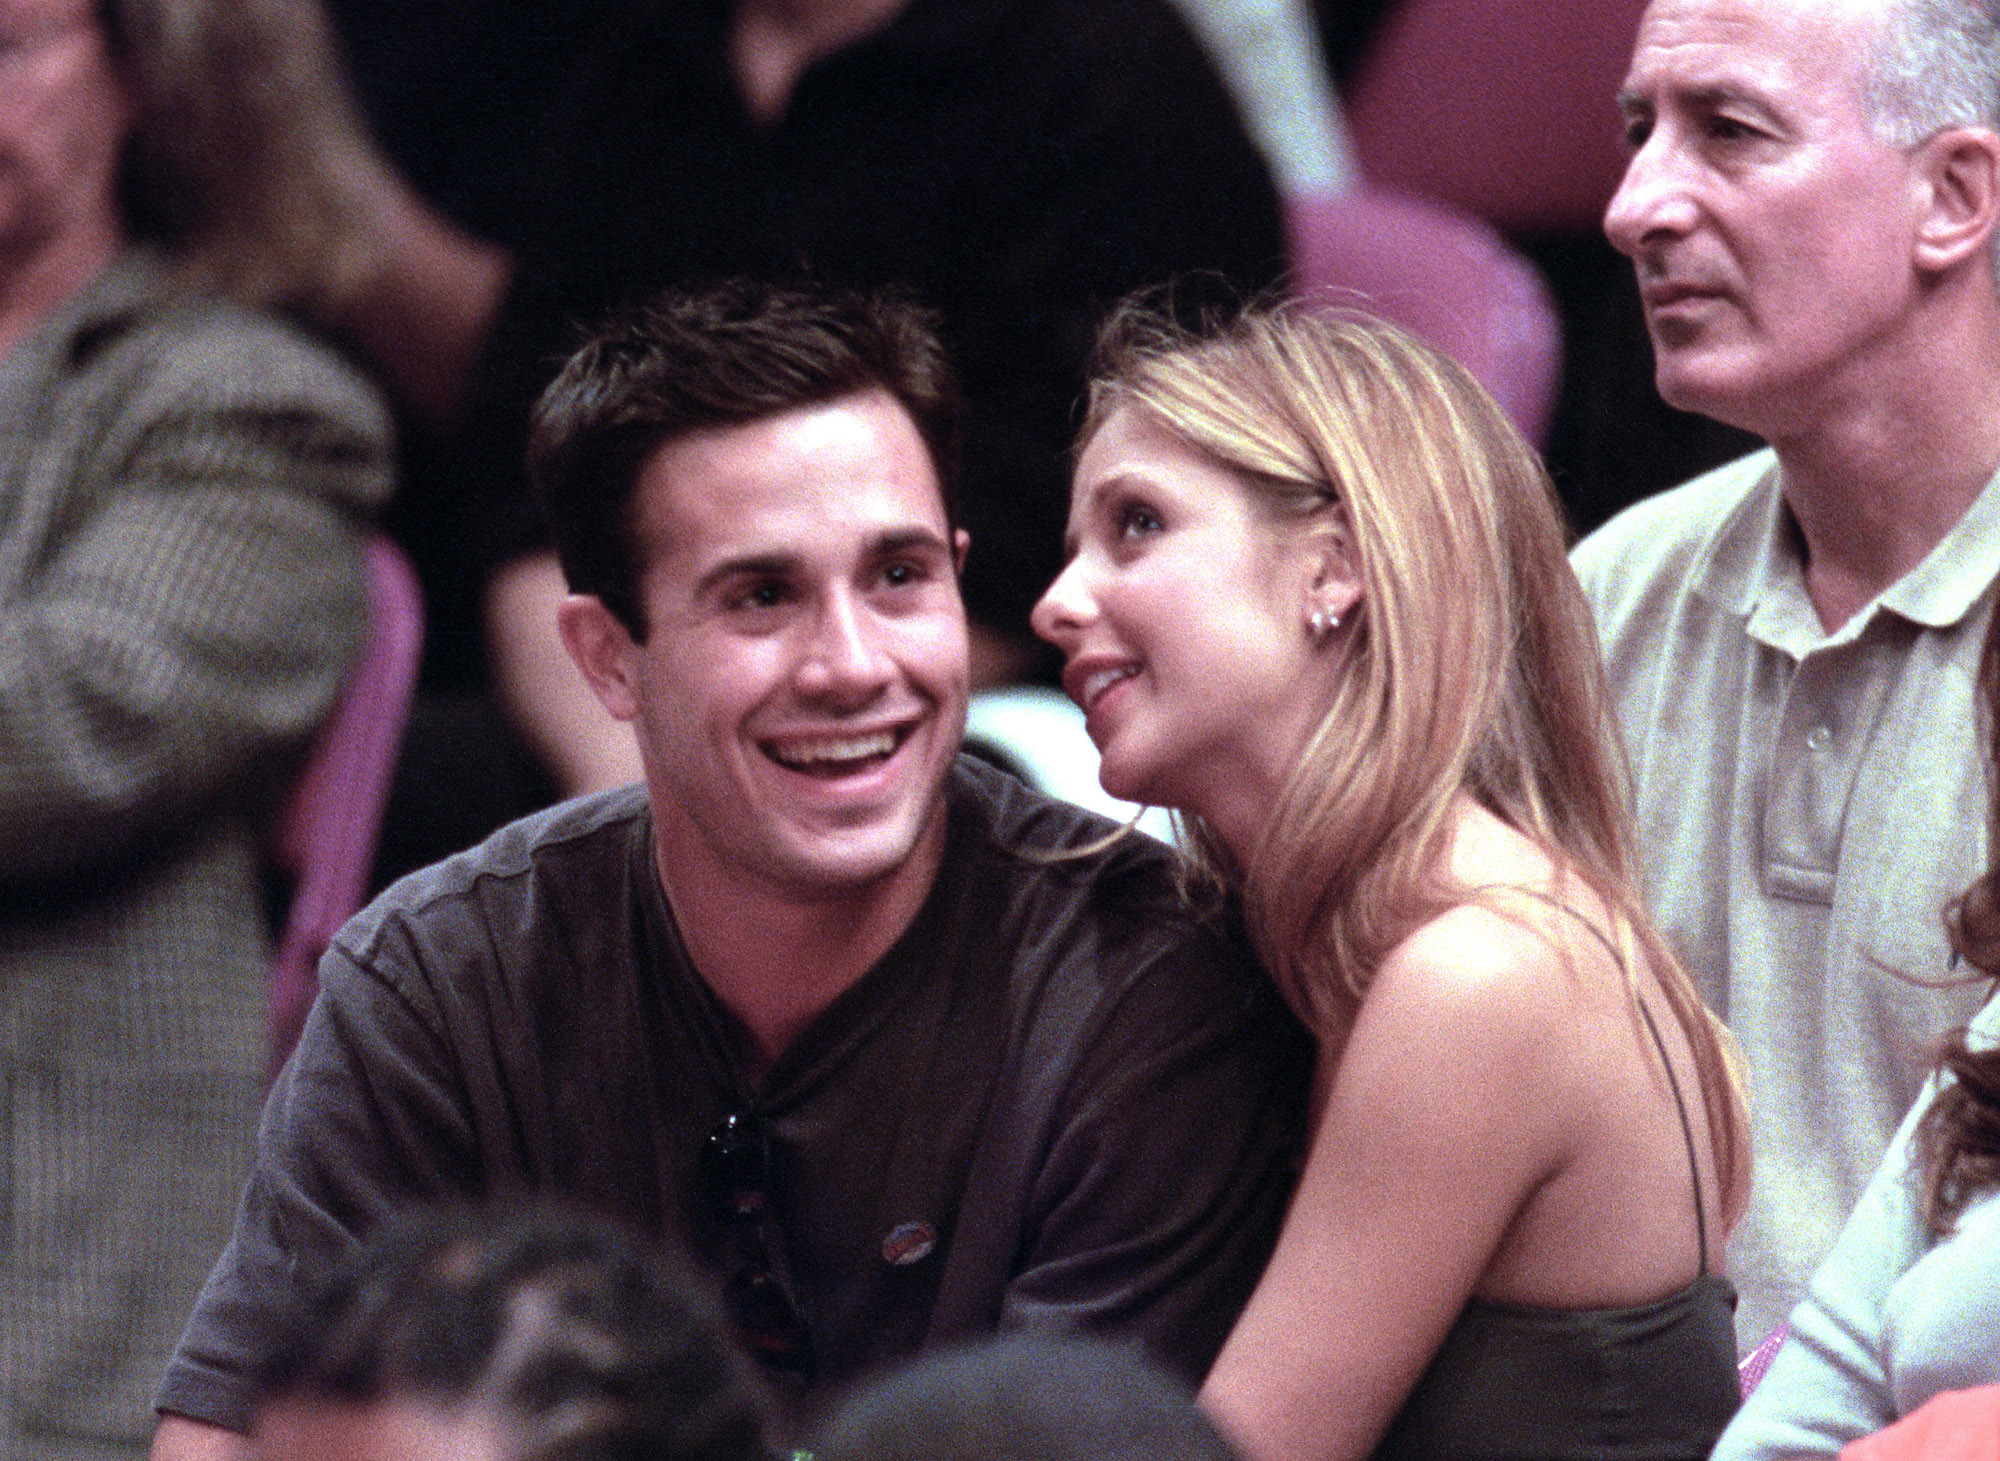 Sarah Michelle Gellar and Freddie Prinze Jr. during New York Knicks Vs. The Miami Heat in the NBA playoffs May 14th, 2000.